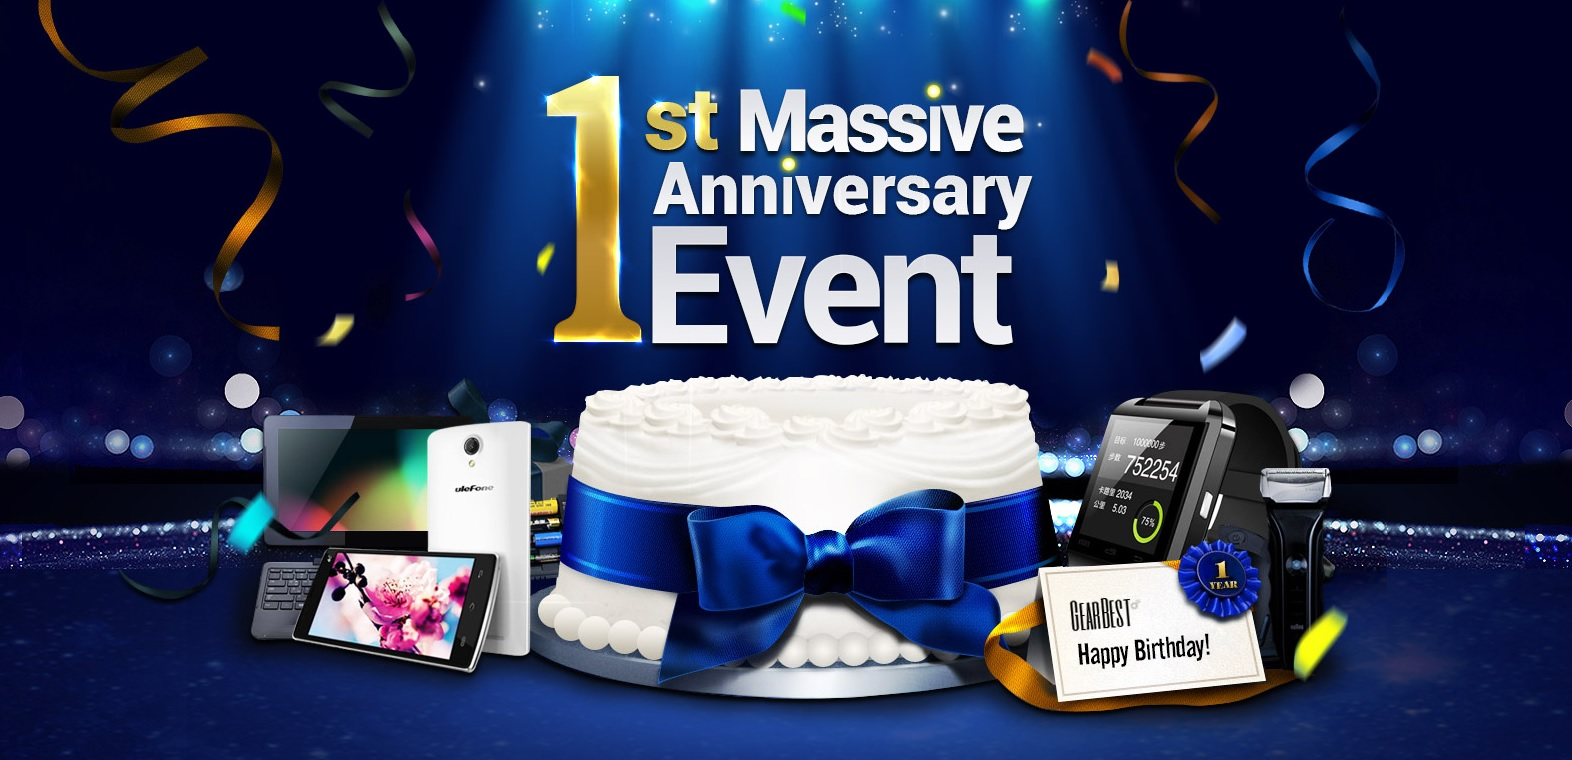 Massive 1st Anniversary Event on GearBest